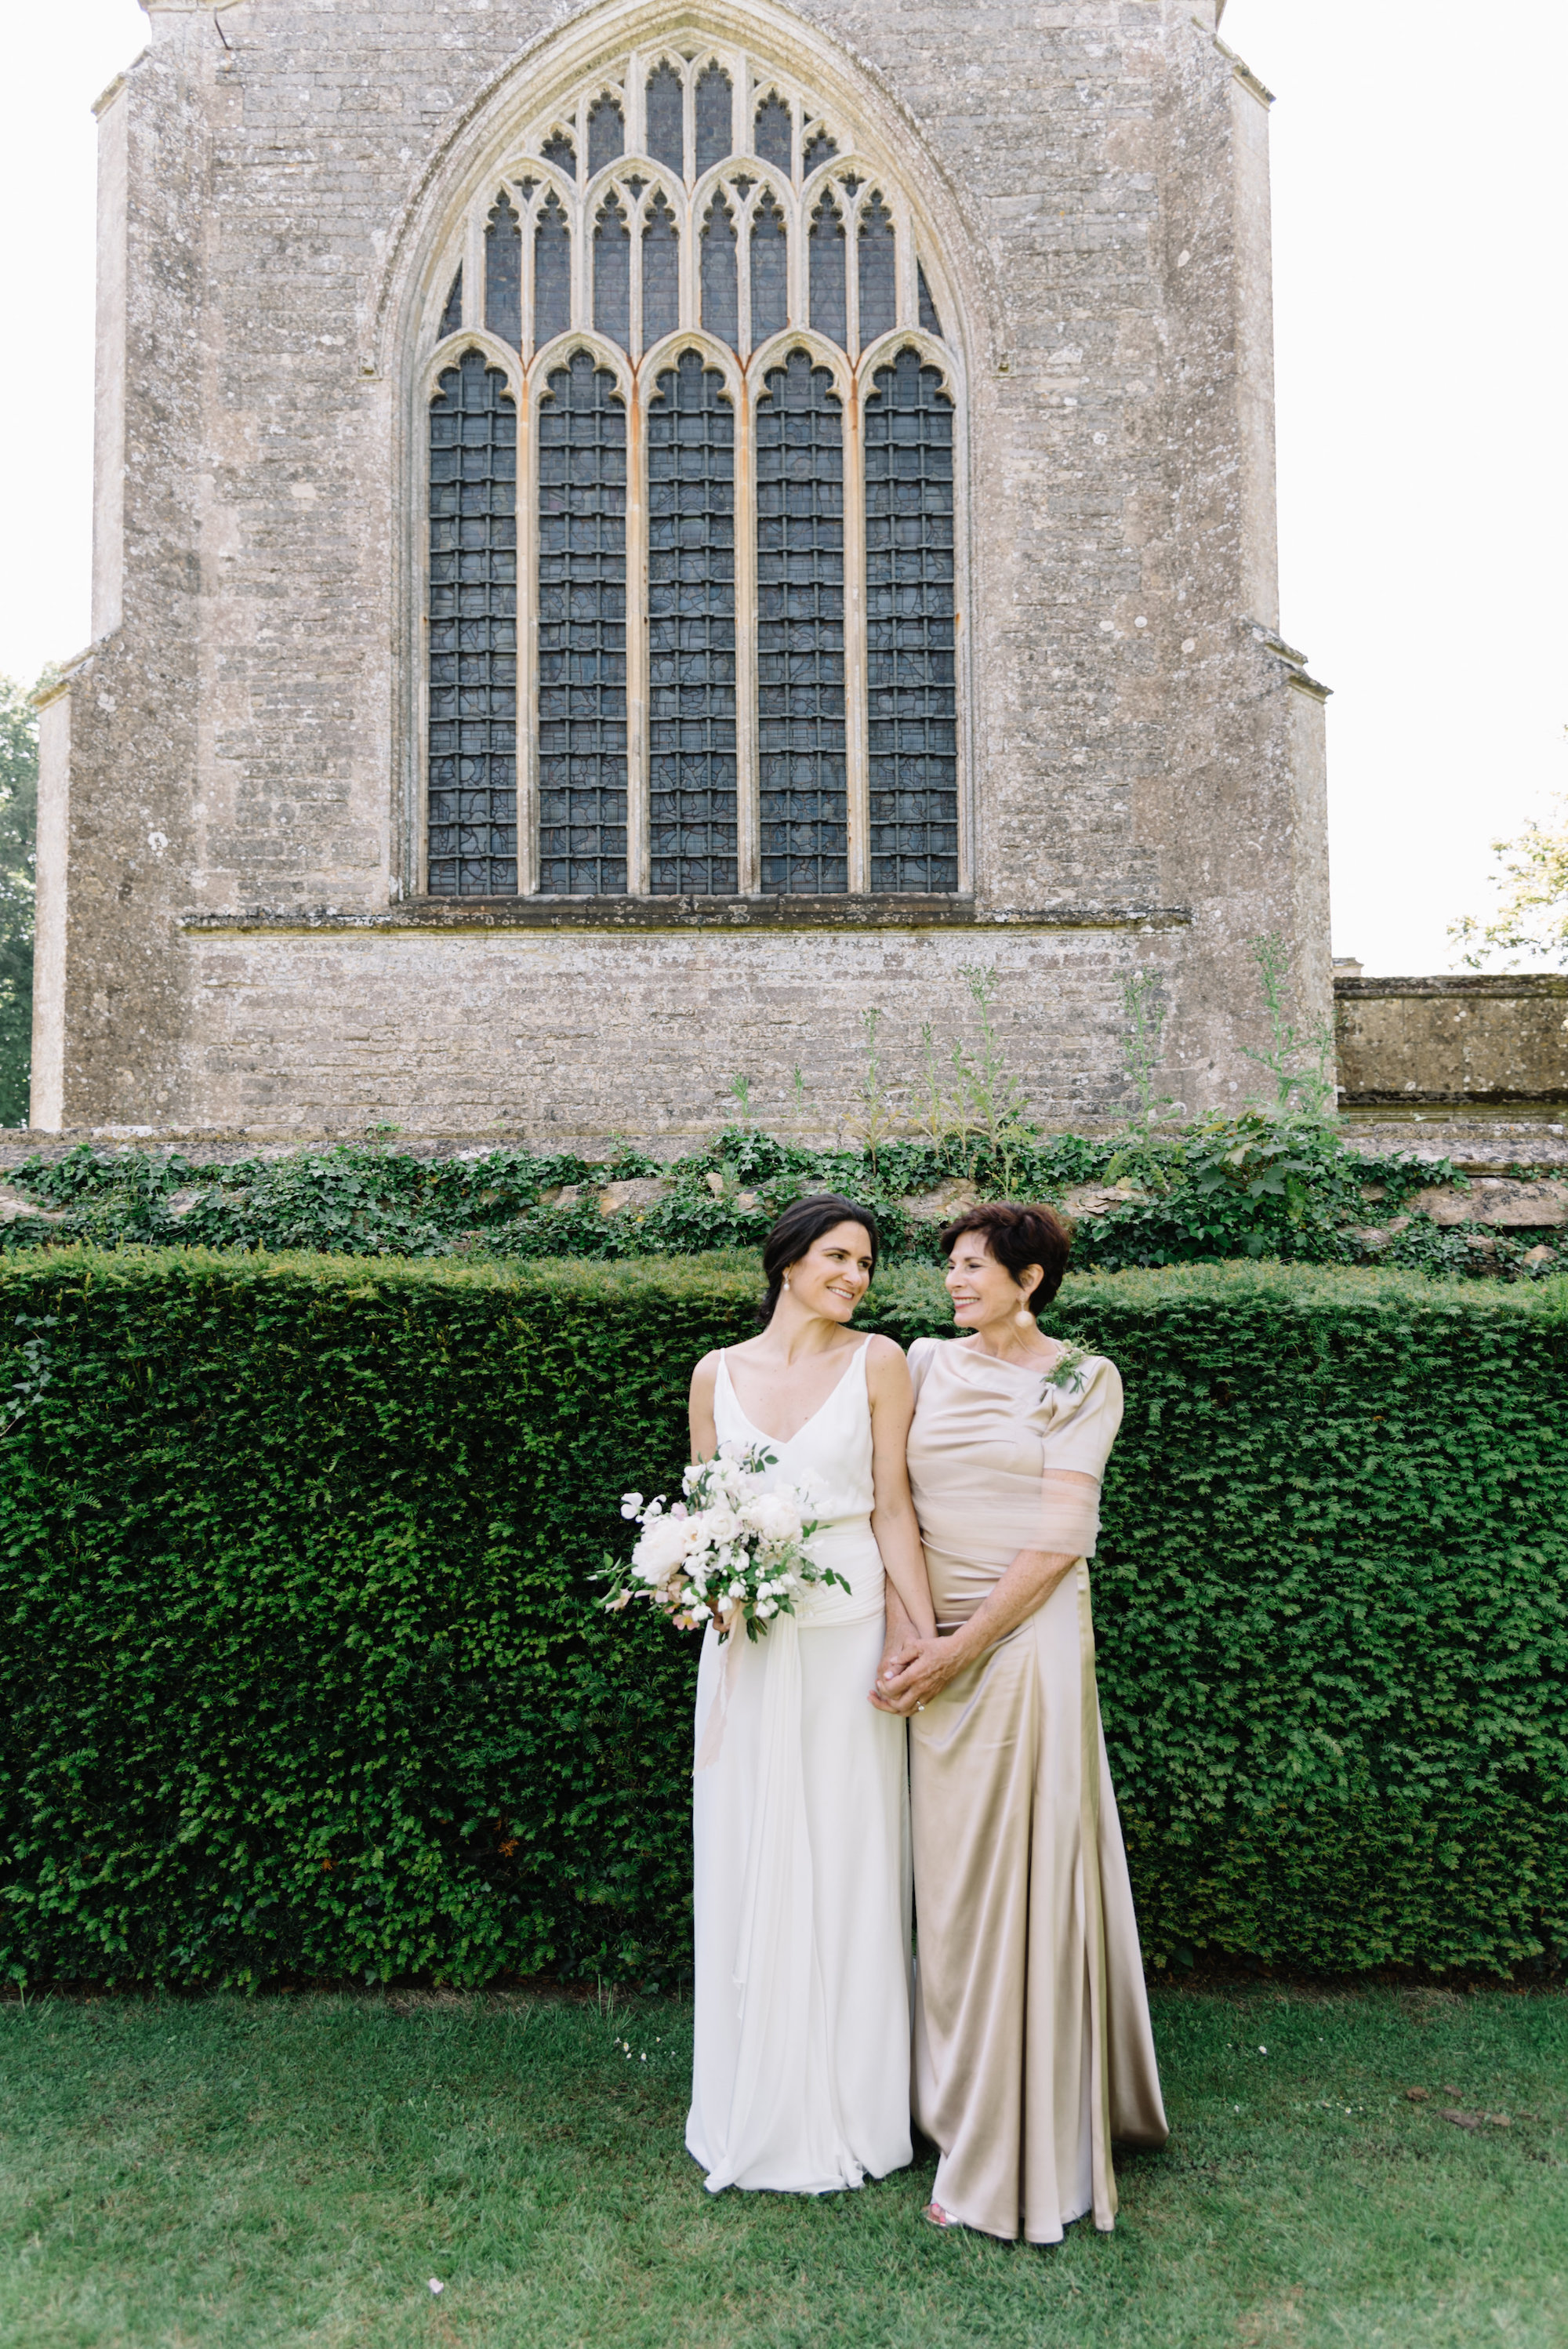 Luxury Wedding Planner UK | Jennifer & Timothy's English Country Manor Wedding | Soft Pink Pale Blue White and Silver Toned Green Neutral Tones American Bride North Cadbury Court | Nicole Colwell Photography 0651.jpg